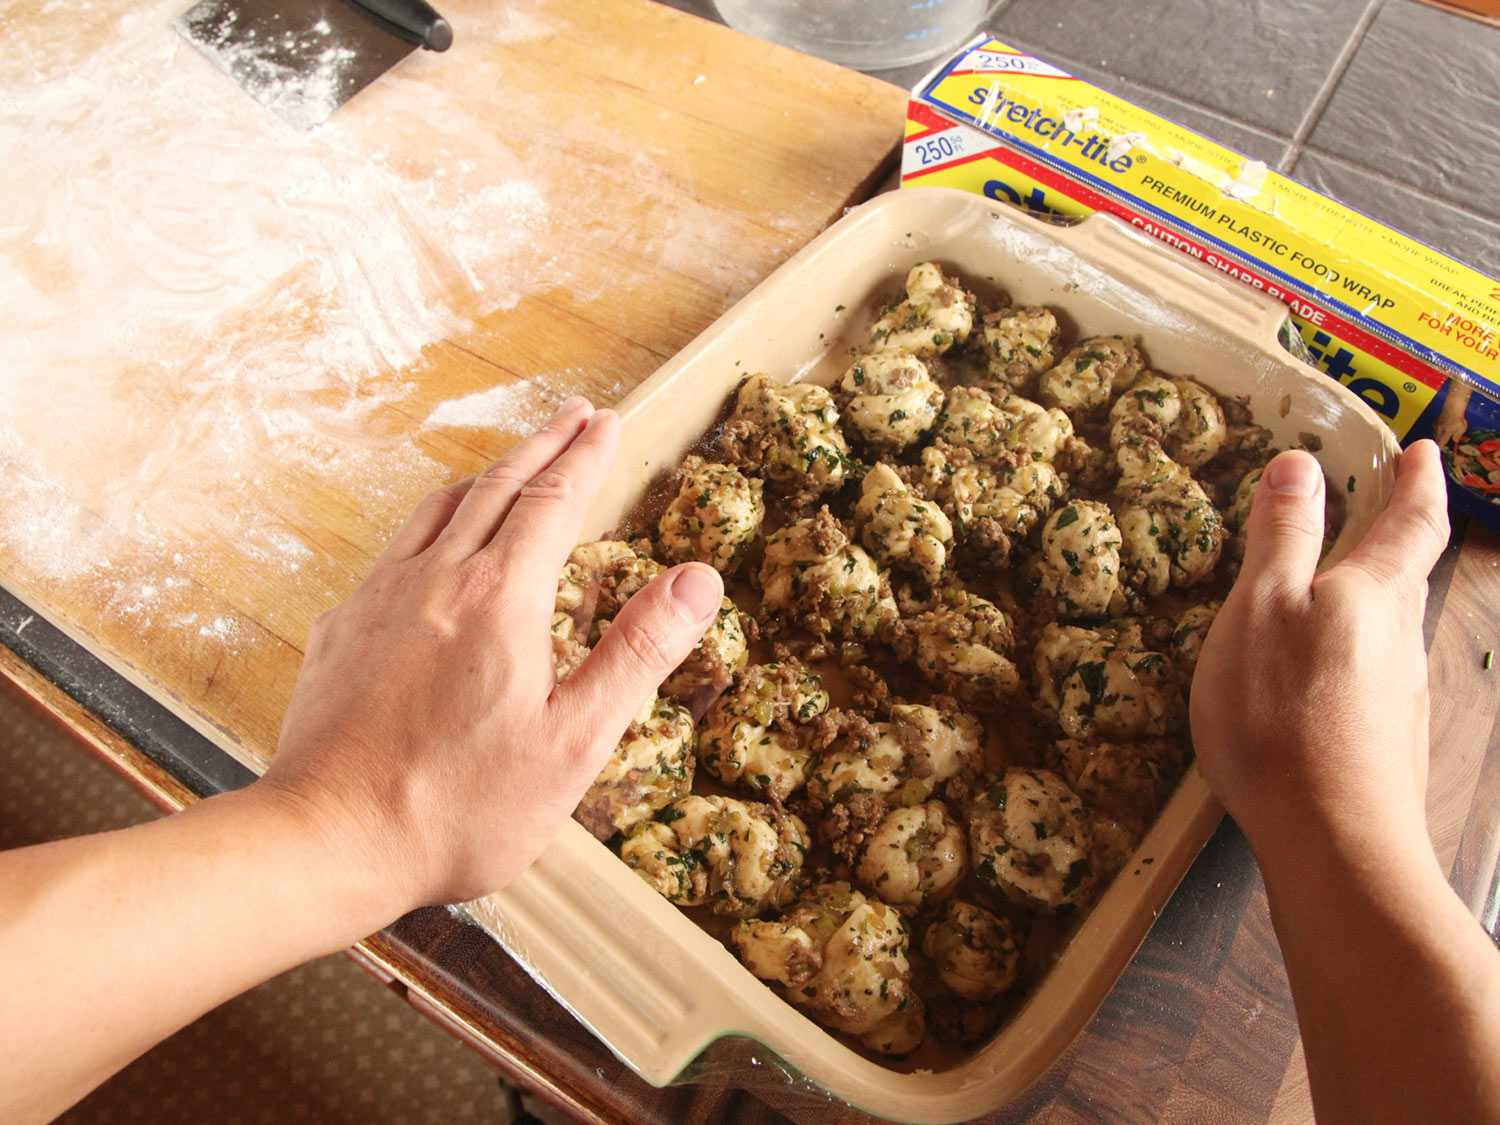 Hands framing a baking dish full of unbaked pull-apart stuffing rolls, next to a box of plastic wrap